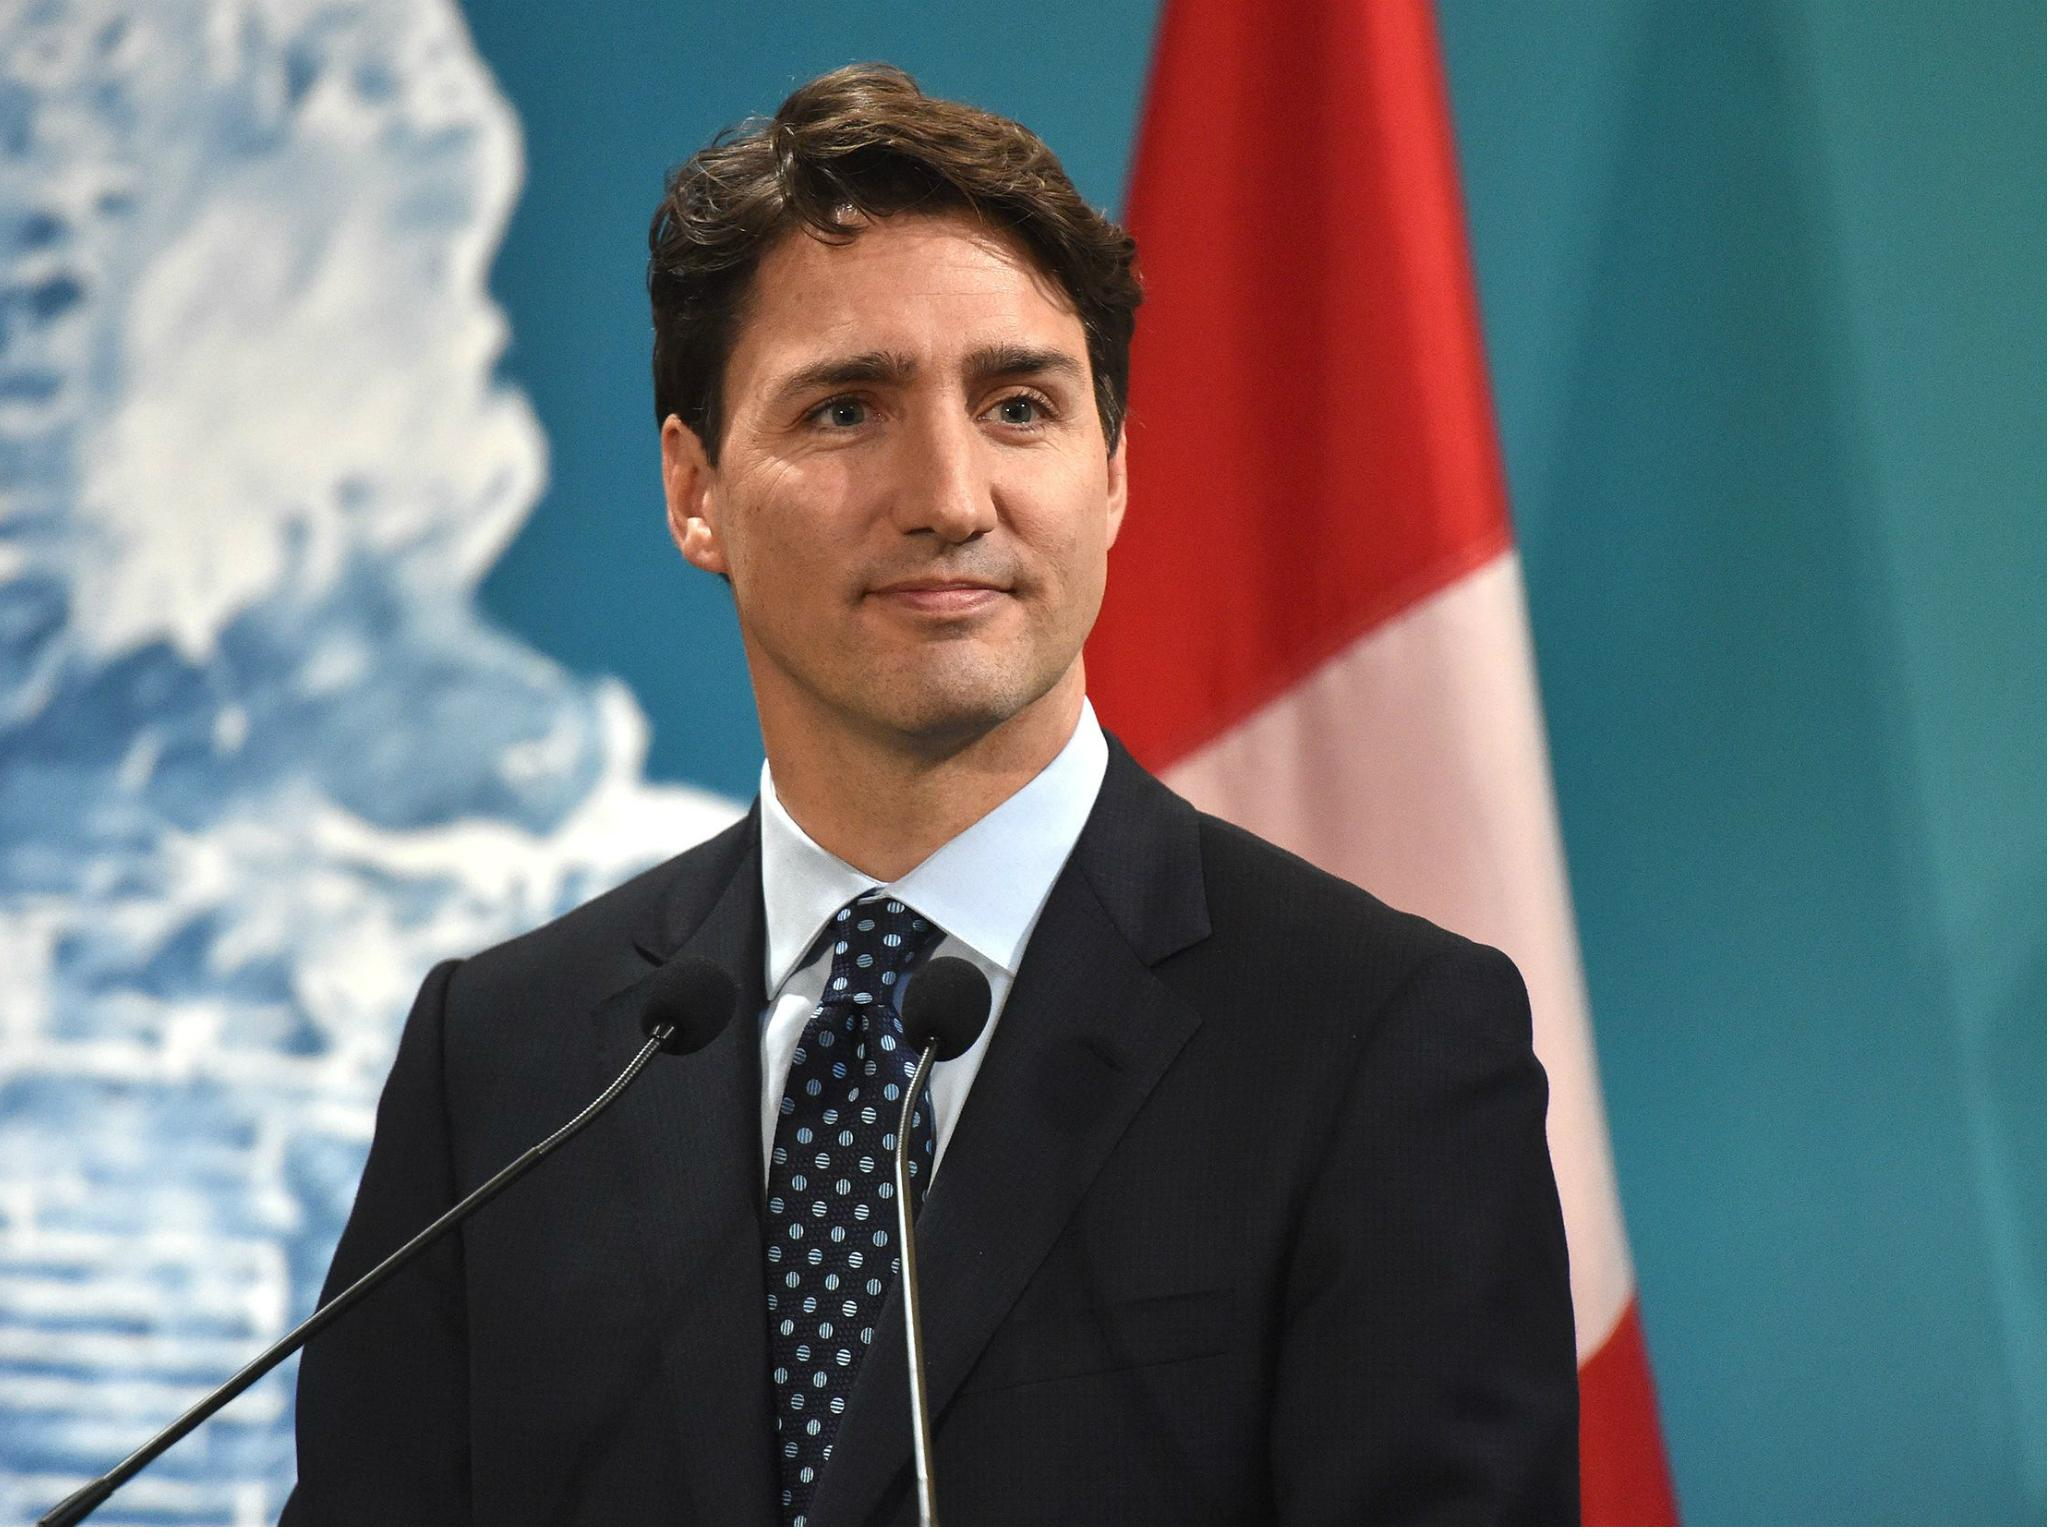 Justin Trudeau Conferred With Atlantic Council Global Citizen Award NewsWoof